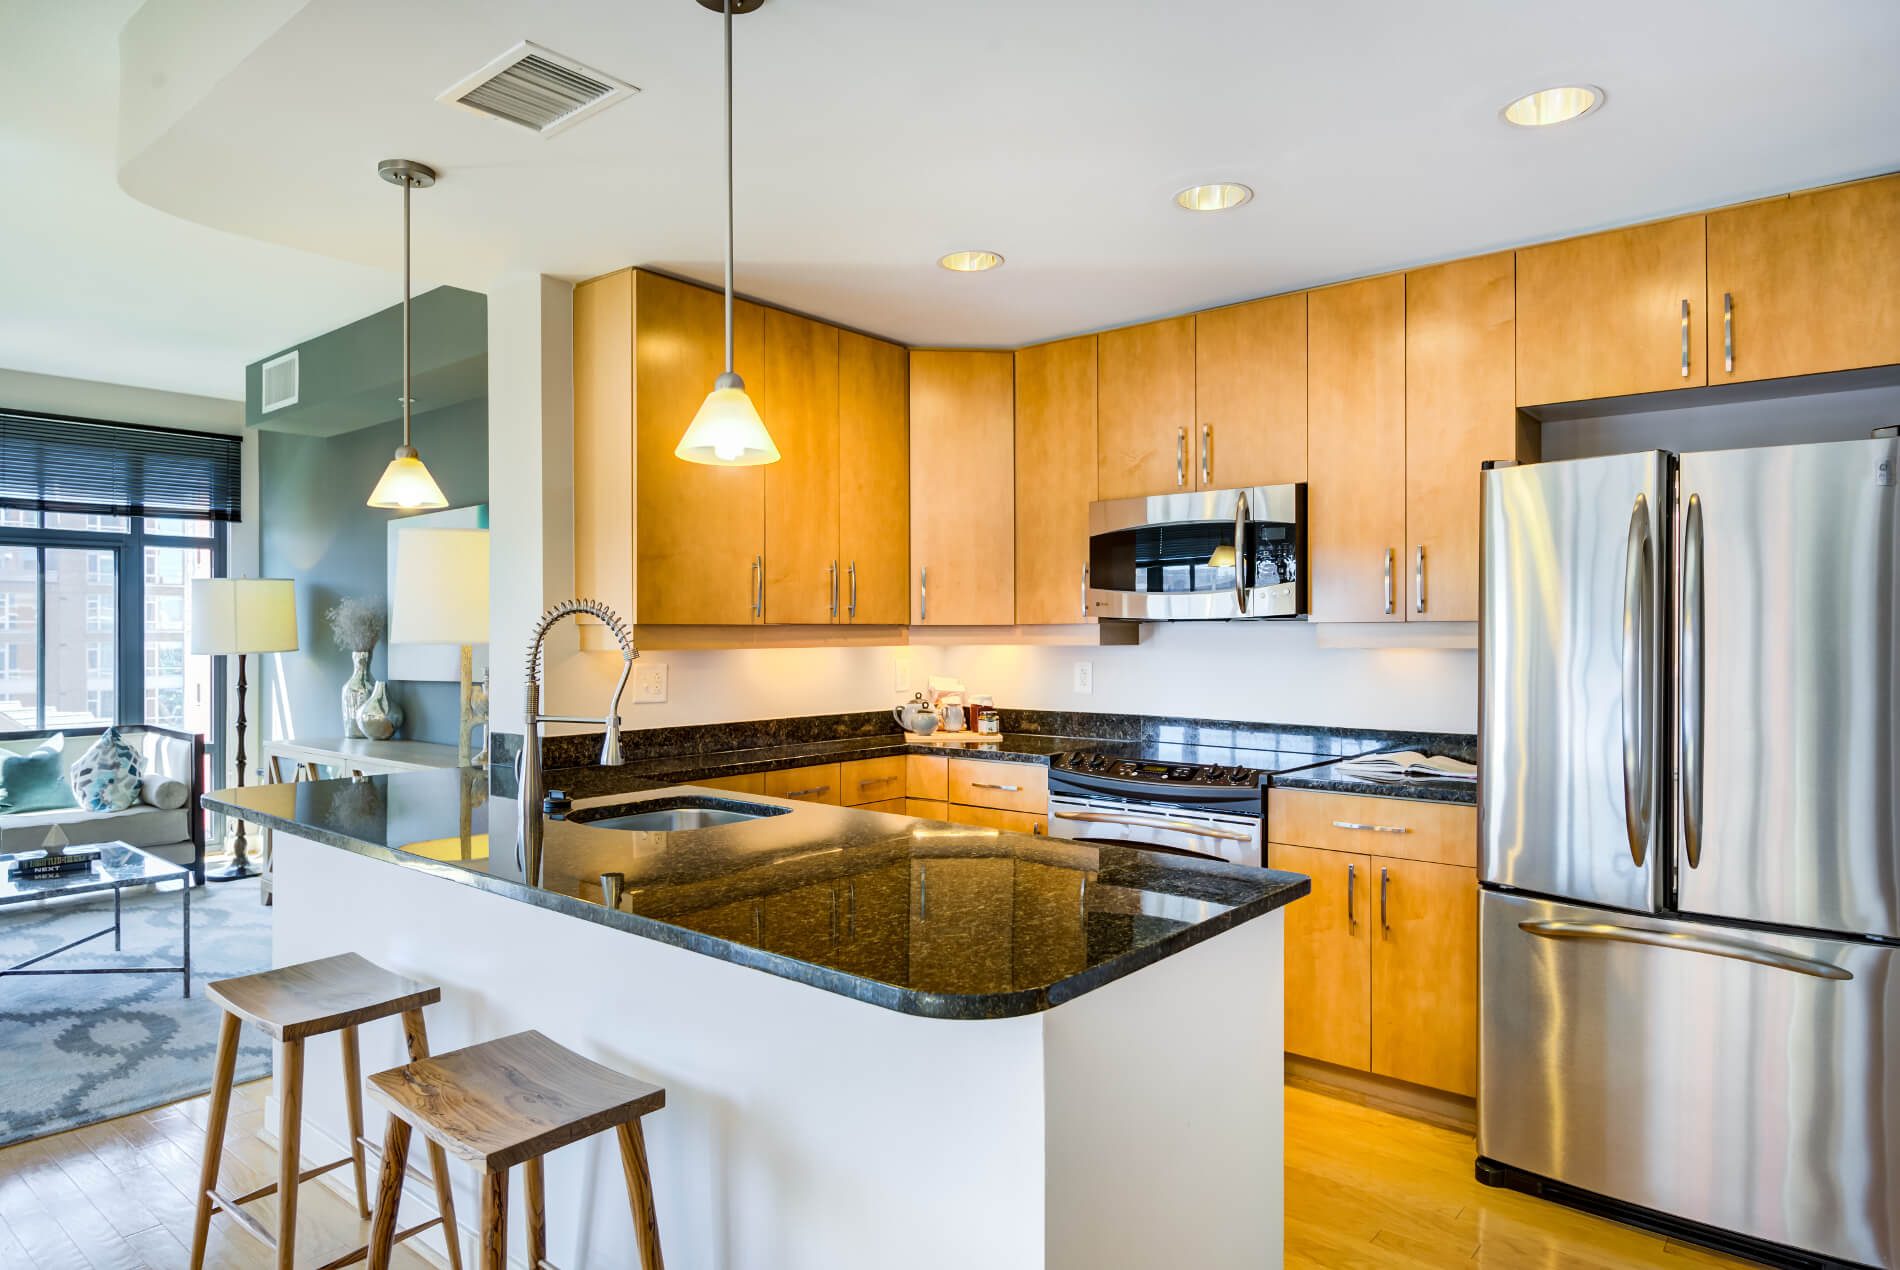 Kitchen with open layout, island and stainless-steel appliances